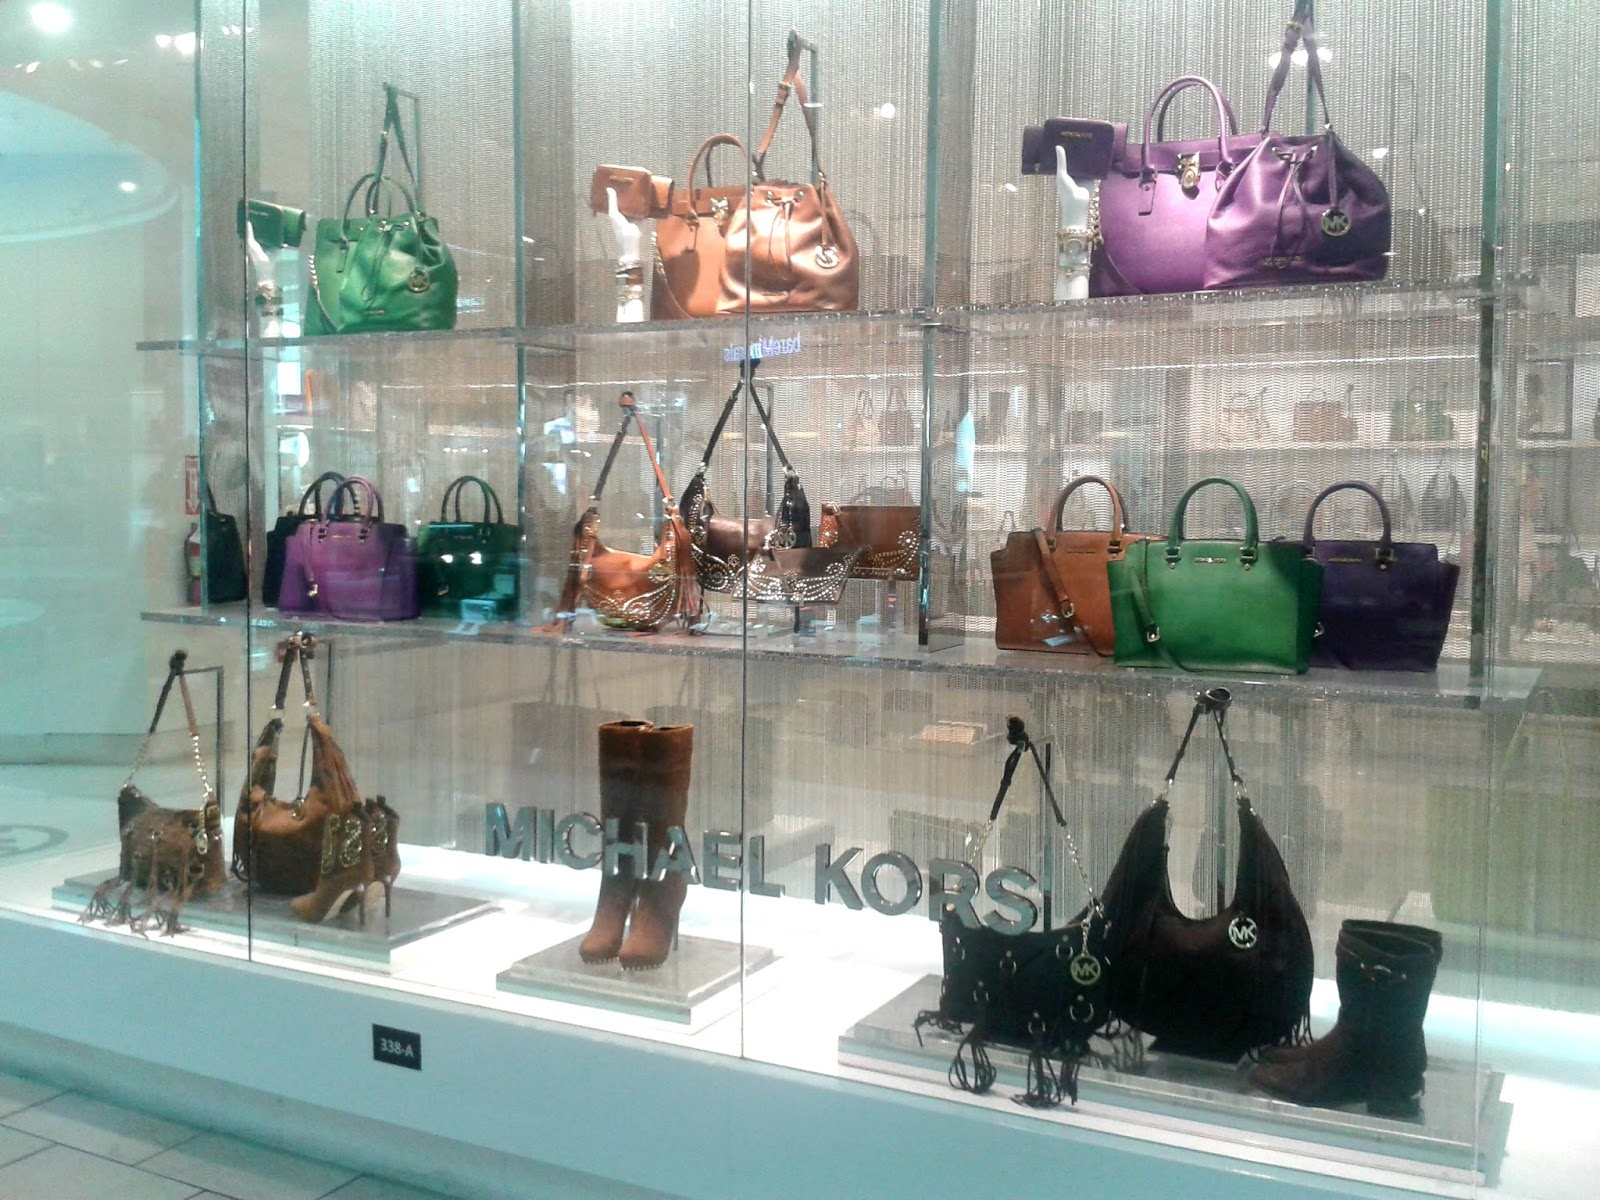 The Florida Mall Michael Kors